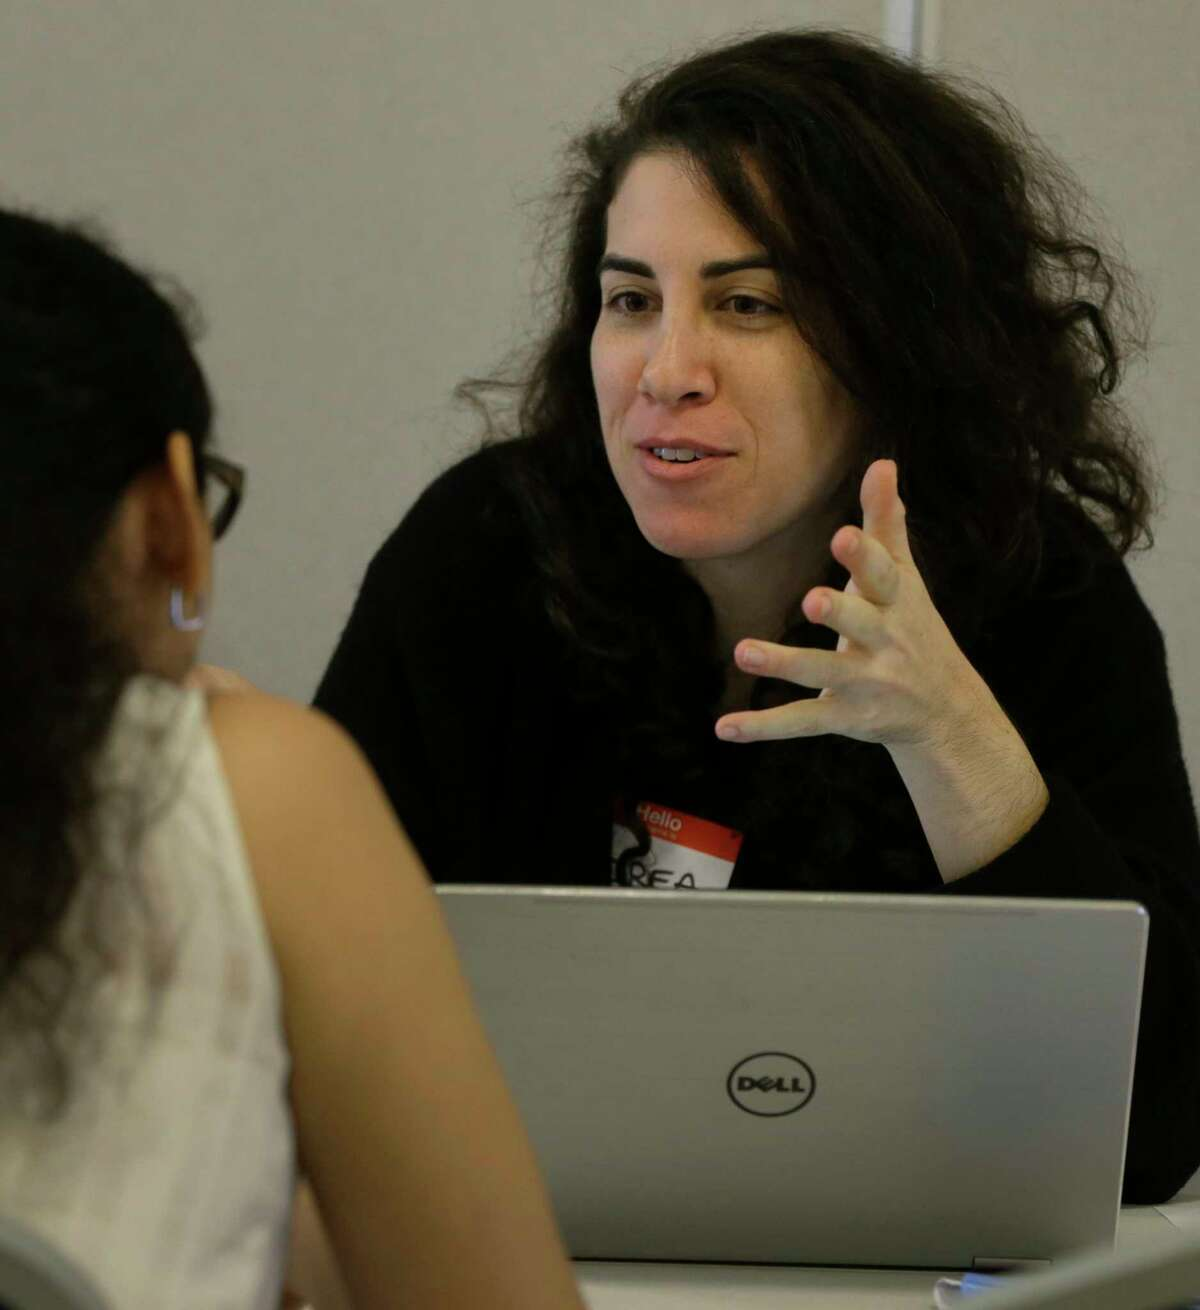 Andrea Guttin, legal director at Houston Immigration Legal Services, right, talks with Jessica Zarate, of Boat People SOS, left, during a DACA Renewal Workshop hosted by Justice for our Neighbors Houston (JFON) and Boat People SOS (BPSOS) held at St. Luke?•s Gethsemane Campus, 6856 Bellaire Blvd., Saturday, Sept. 23, 2017, in Houston.